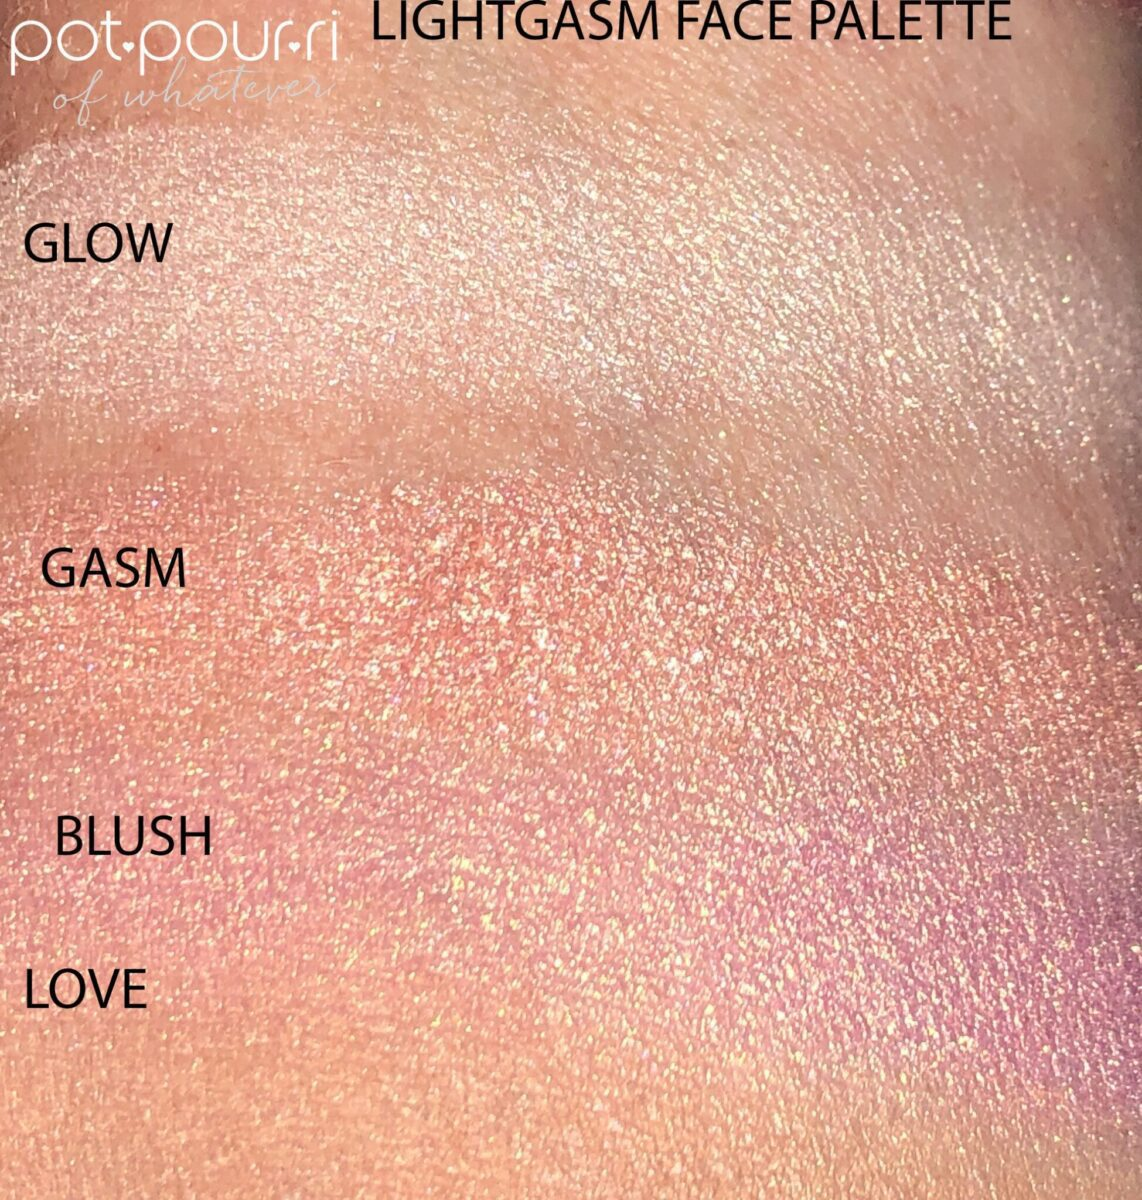 SWATCHES OF THE LIGHTGASM PALETTE